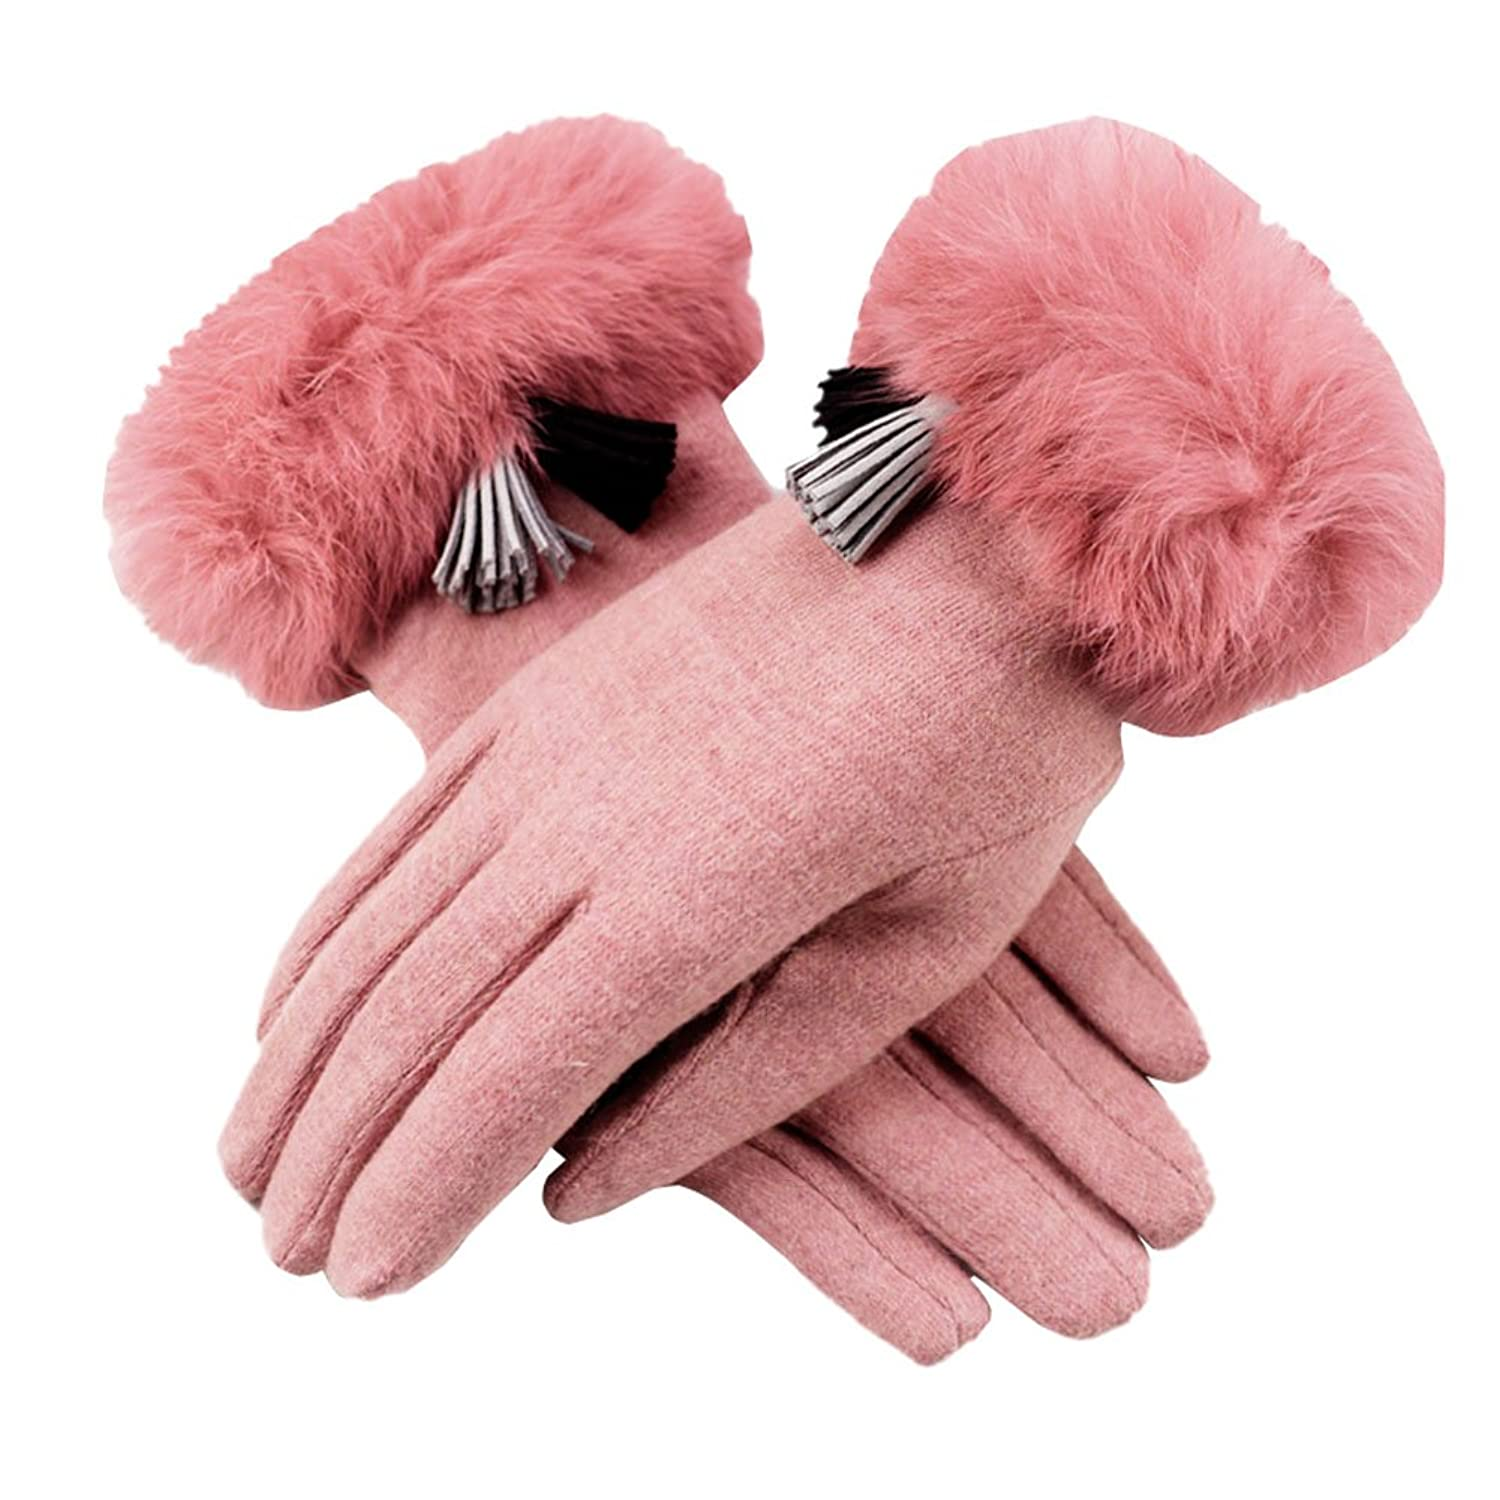 Driving texting gloves - Lerela Womens Touch Screen Winter Warm Fleece Lined Gloves Pink Driving Texting Gloves 70 Off